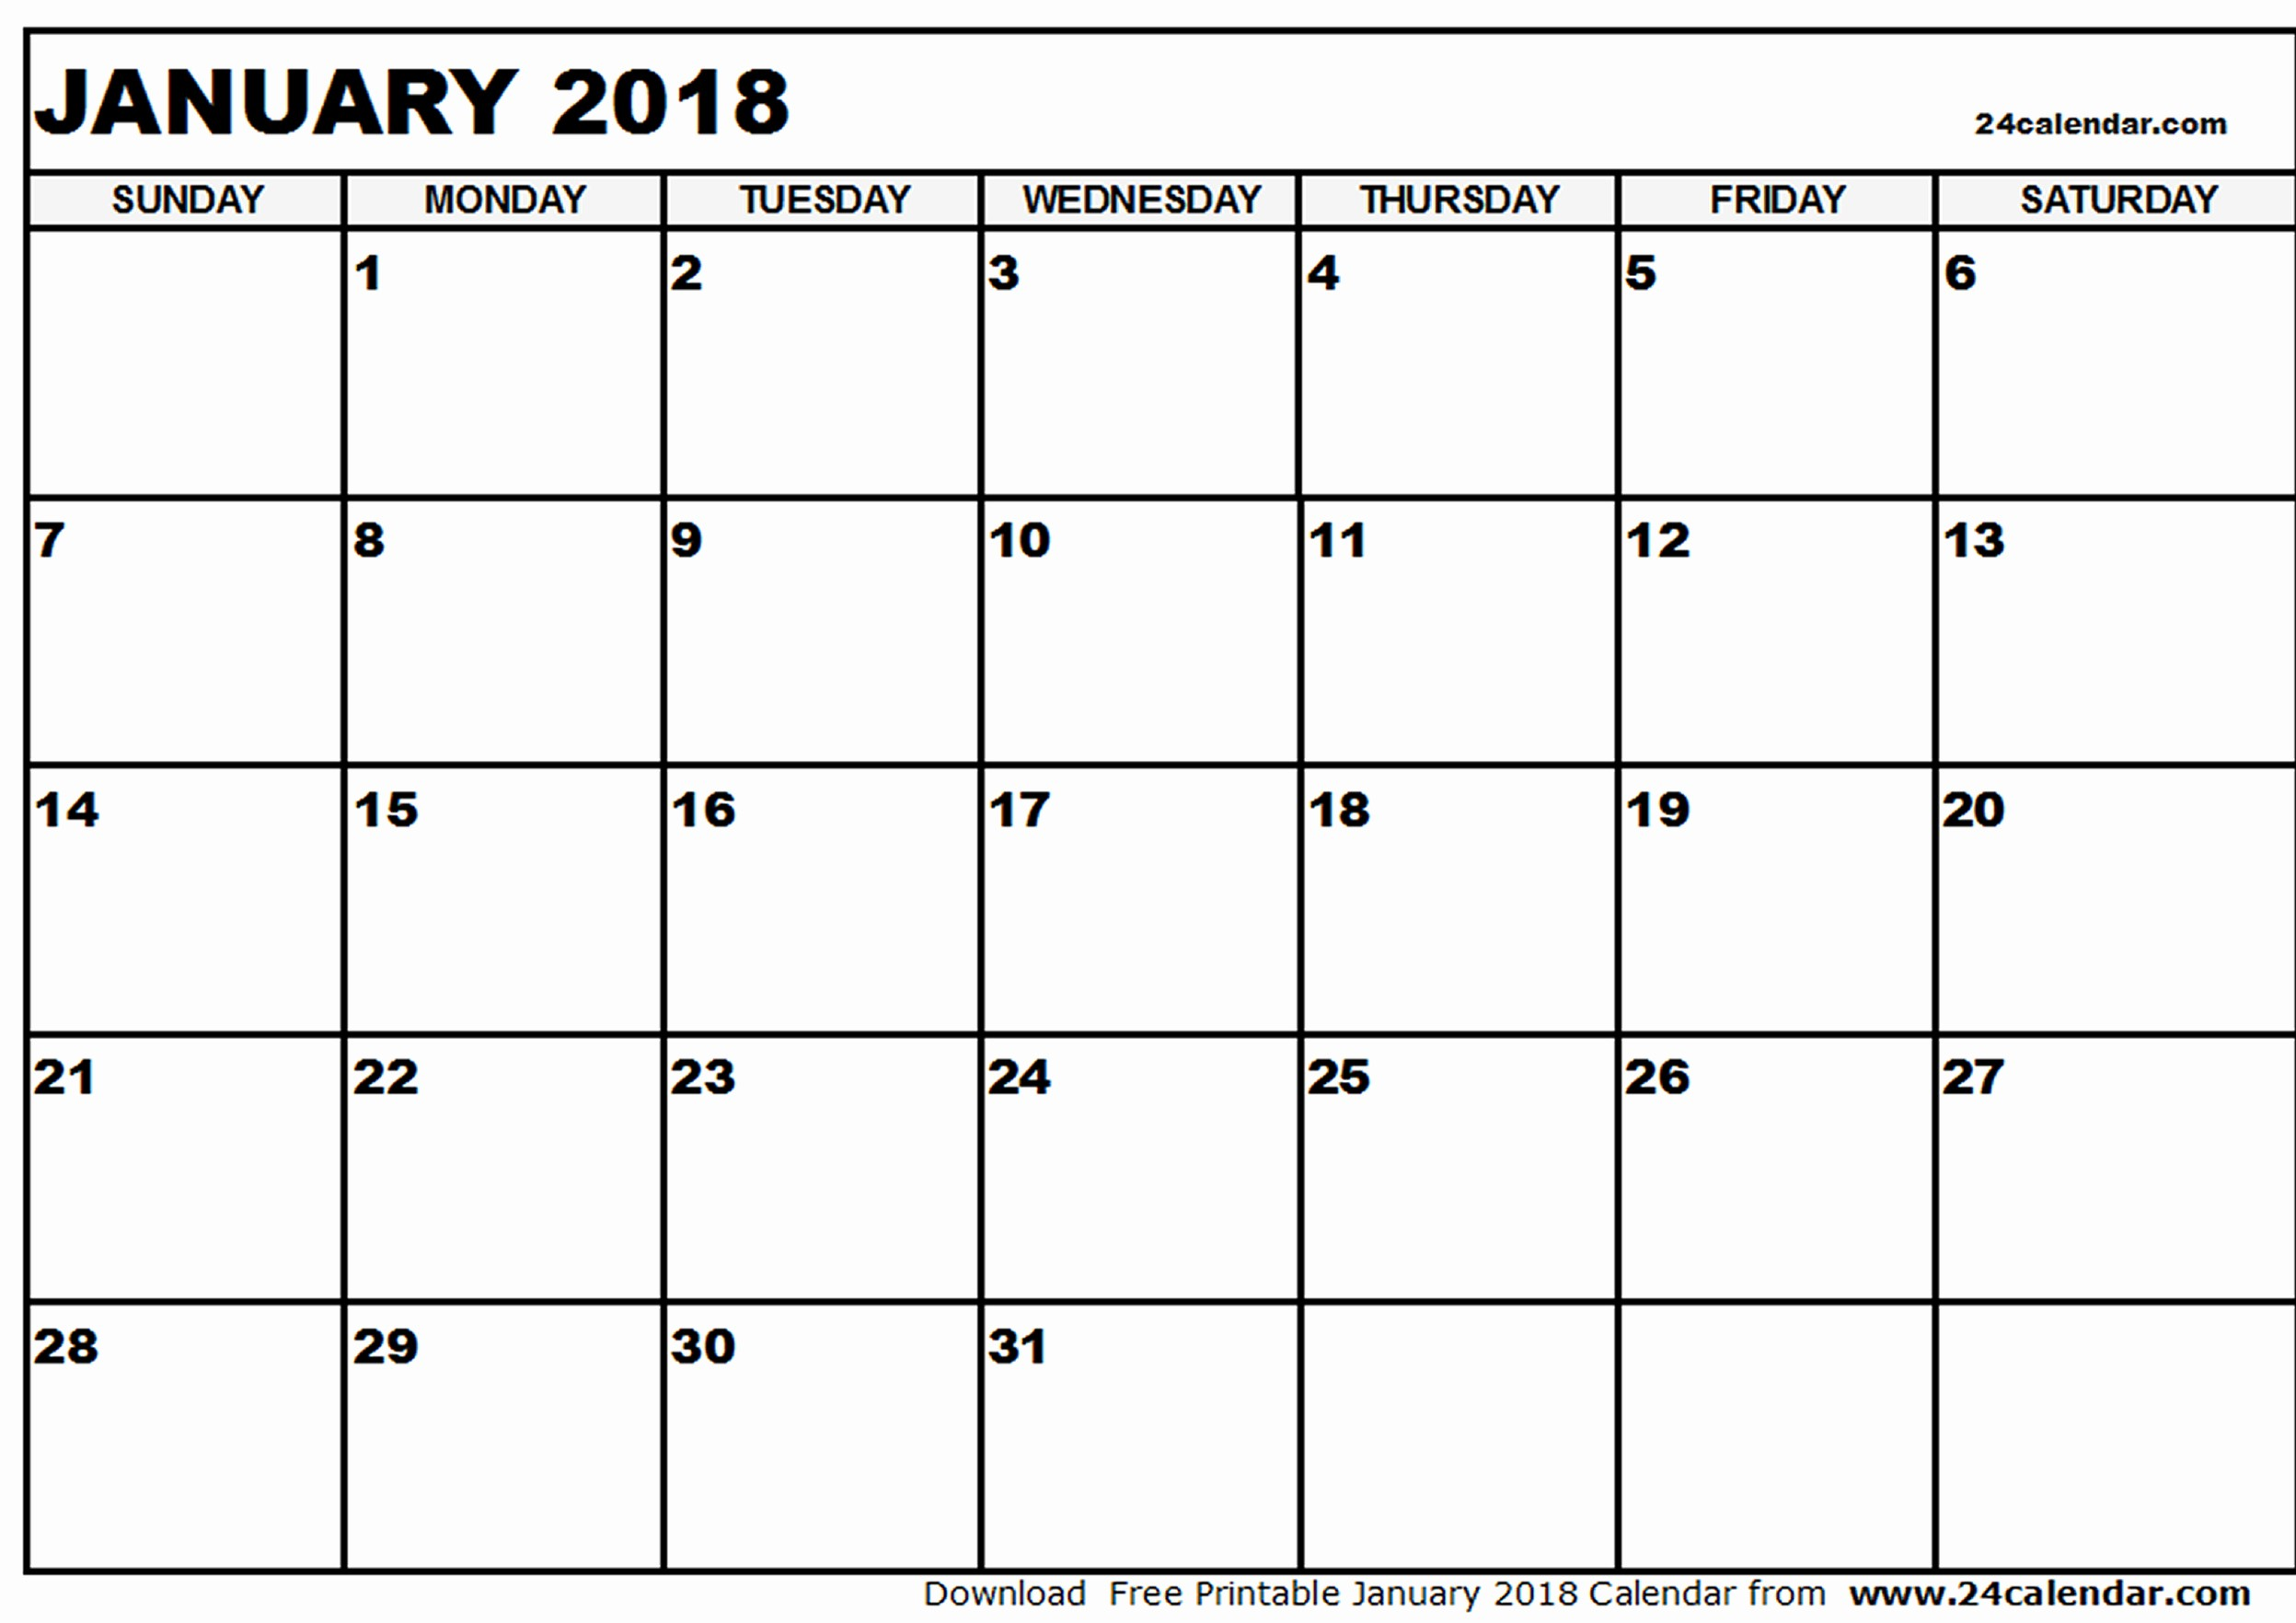 Blank January 2018 Calendar Printable Best Of January 2018 Printable Calendar